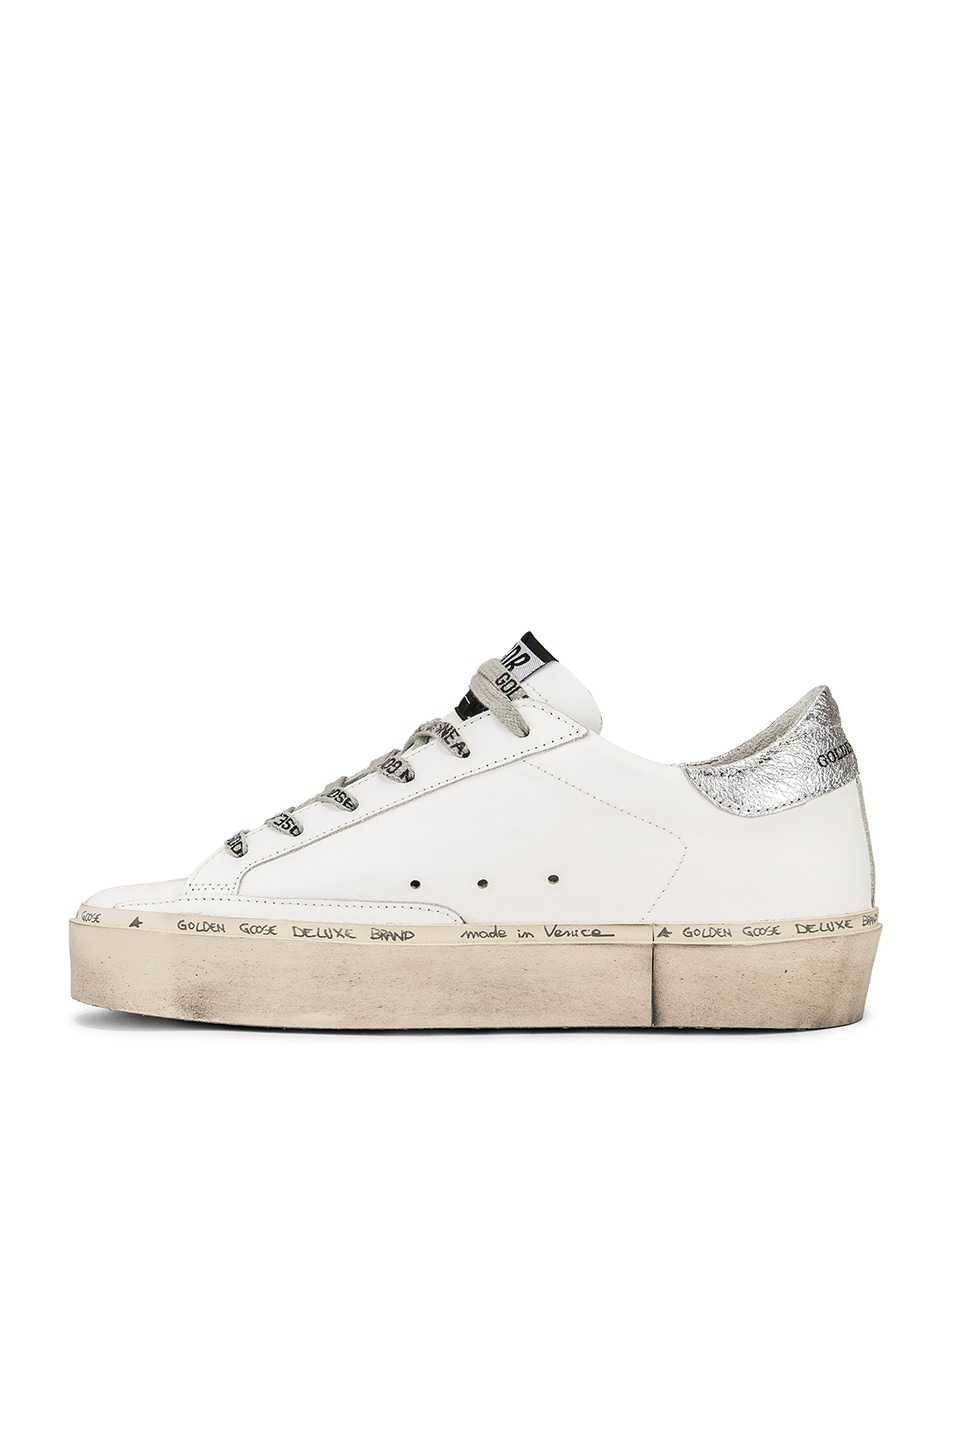 Image 5 of Golden Goose Hi Star Sneakers in White Leather & Silver Pink